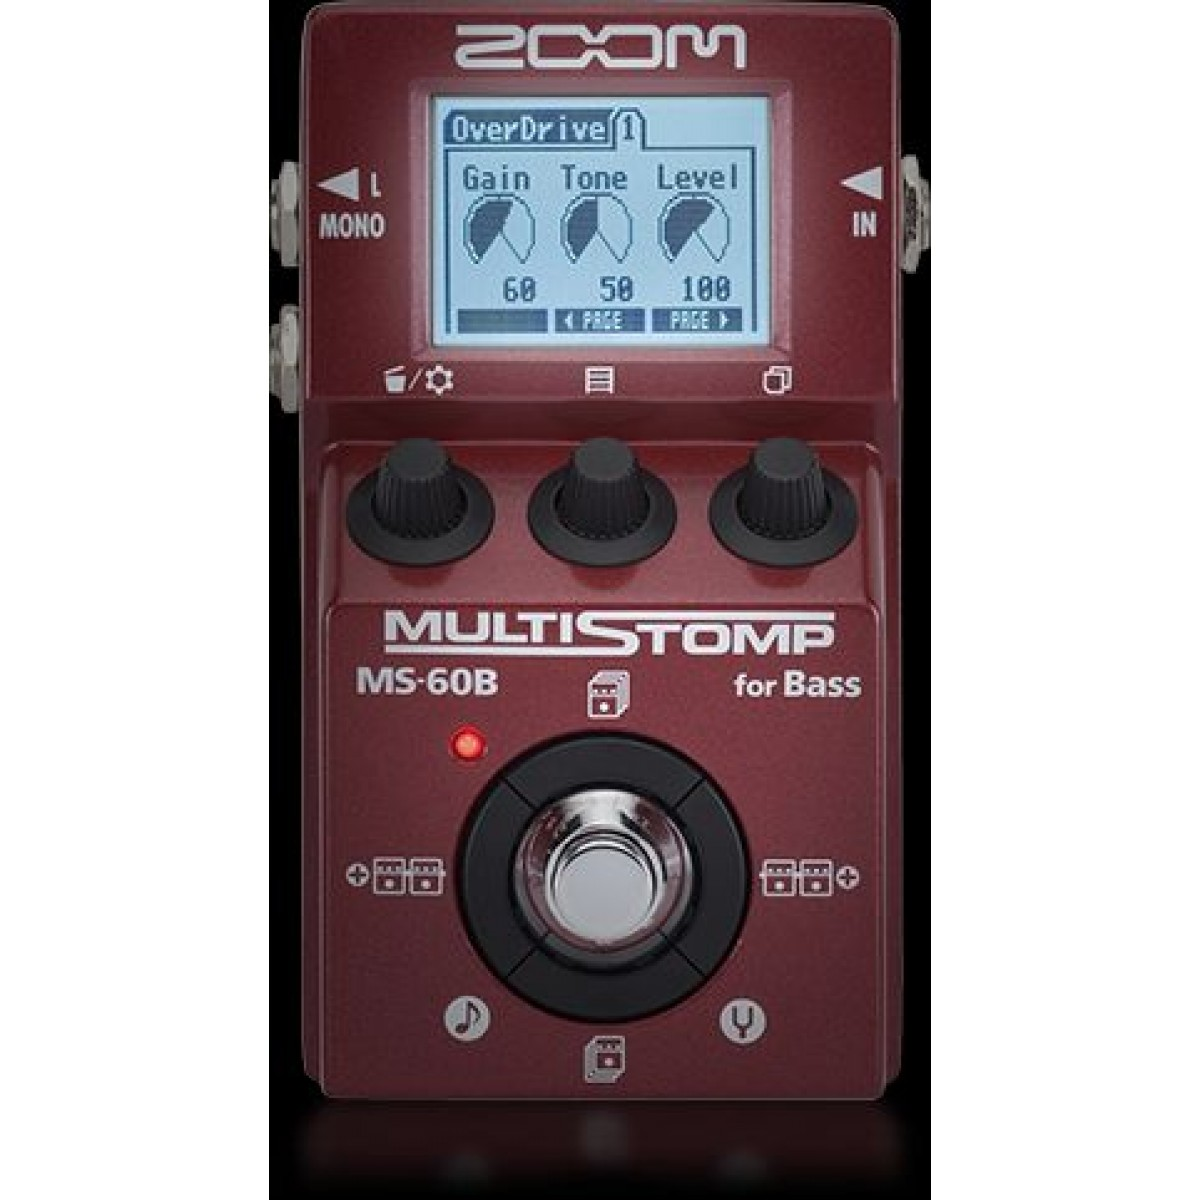 zoom ms 60b multistomp bass guitar multi effects pedal. Black Bedroom Furniture Sets. Home Design Ideas